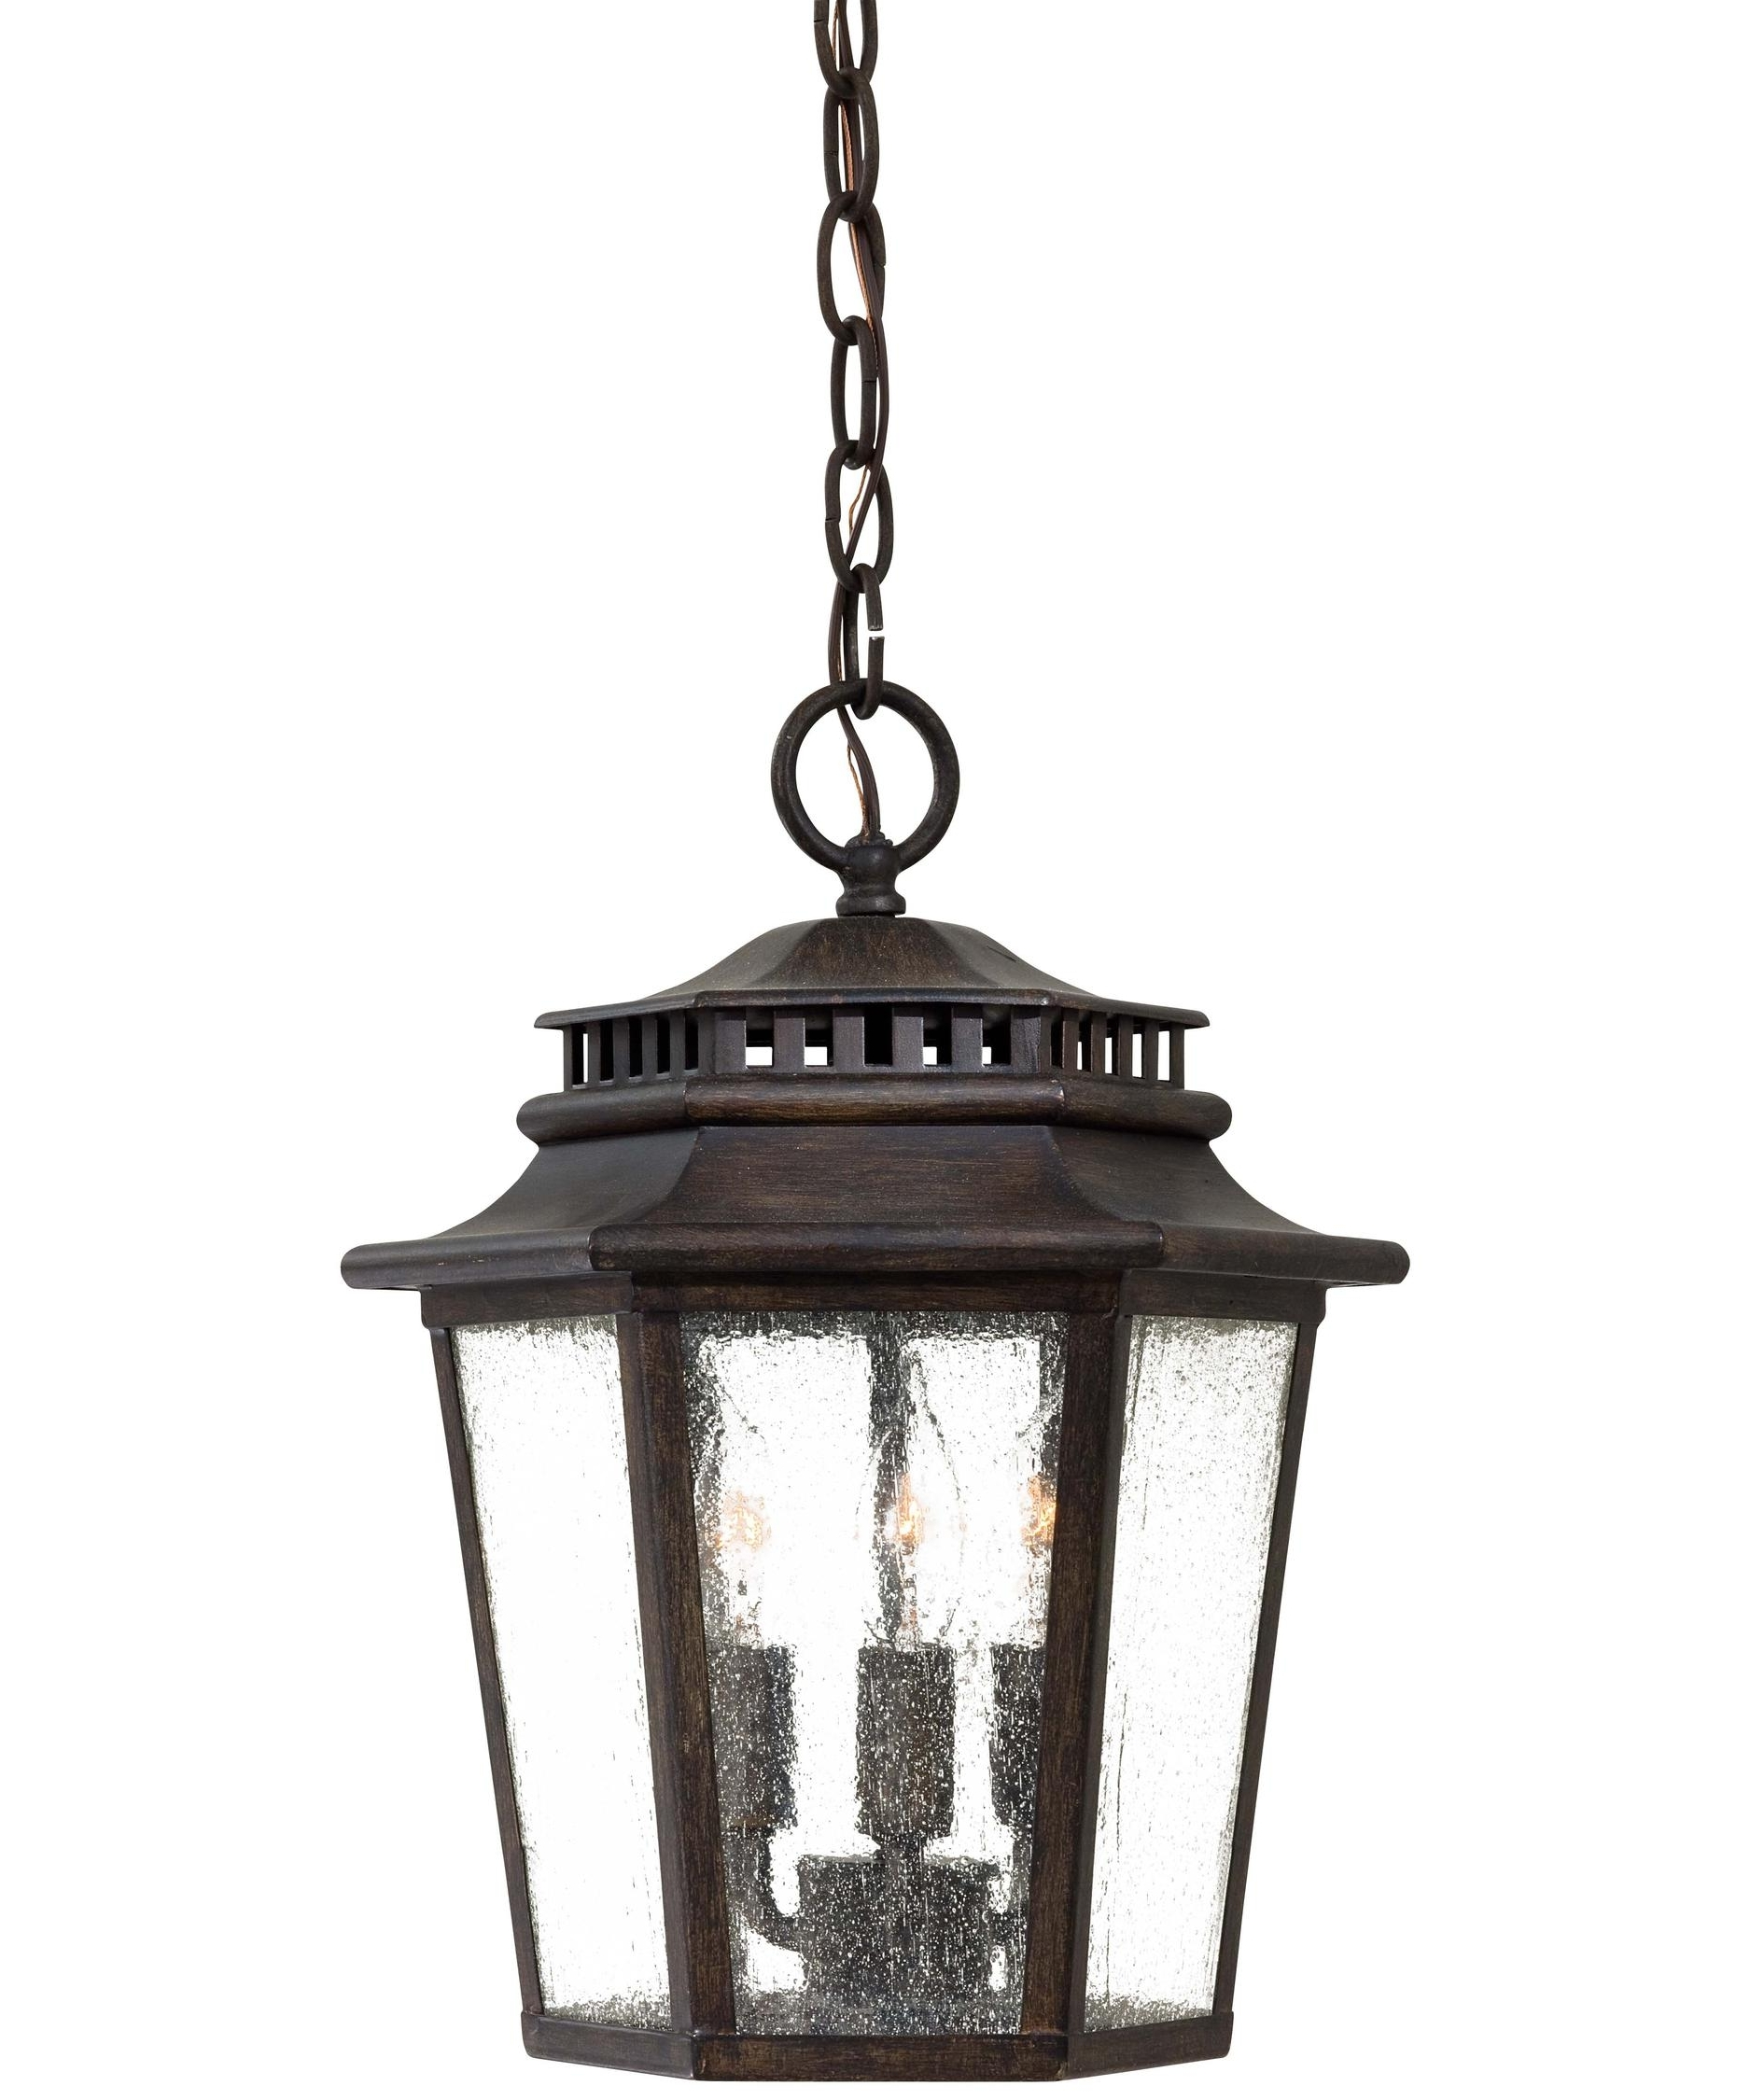 Popular Minka Lavery 8274 Wickford Bay 11 Inch Wide 3 Light Outdoor Hanging In Outdoor Hanging Ceiling Lights (View 15 of 20)